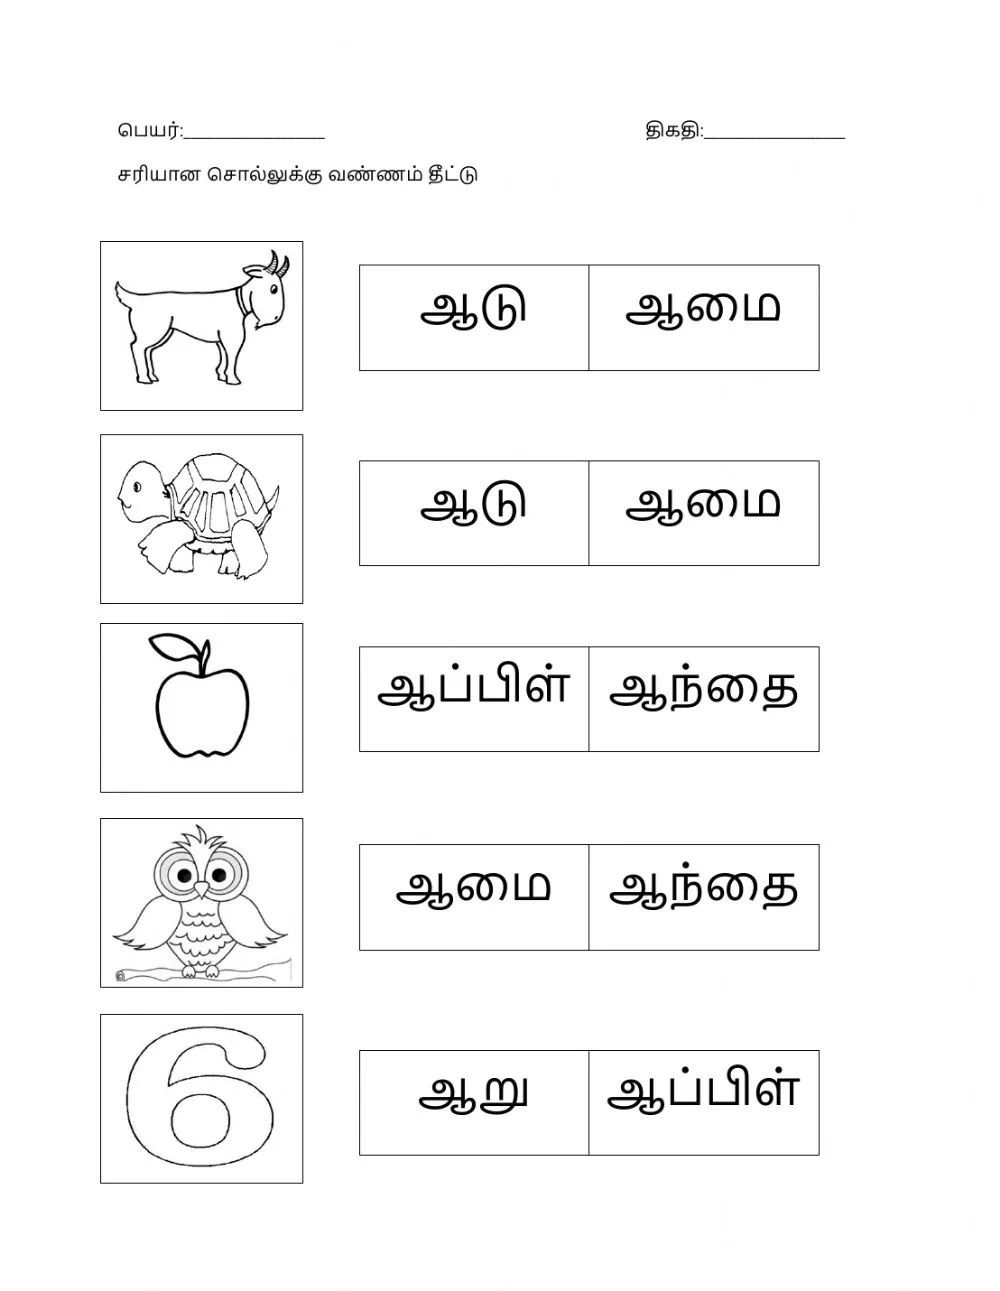 medium resolution of Get Tamil Worksheet For Grade 6 Pics – Tunnel To Viaduct Run